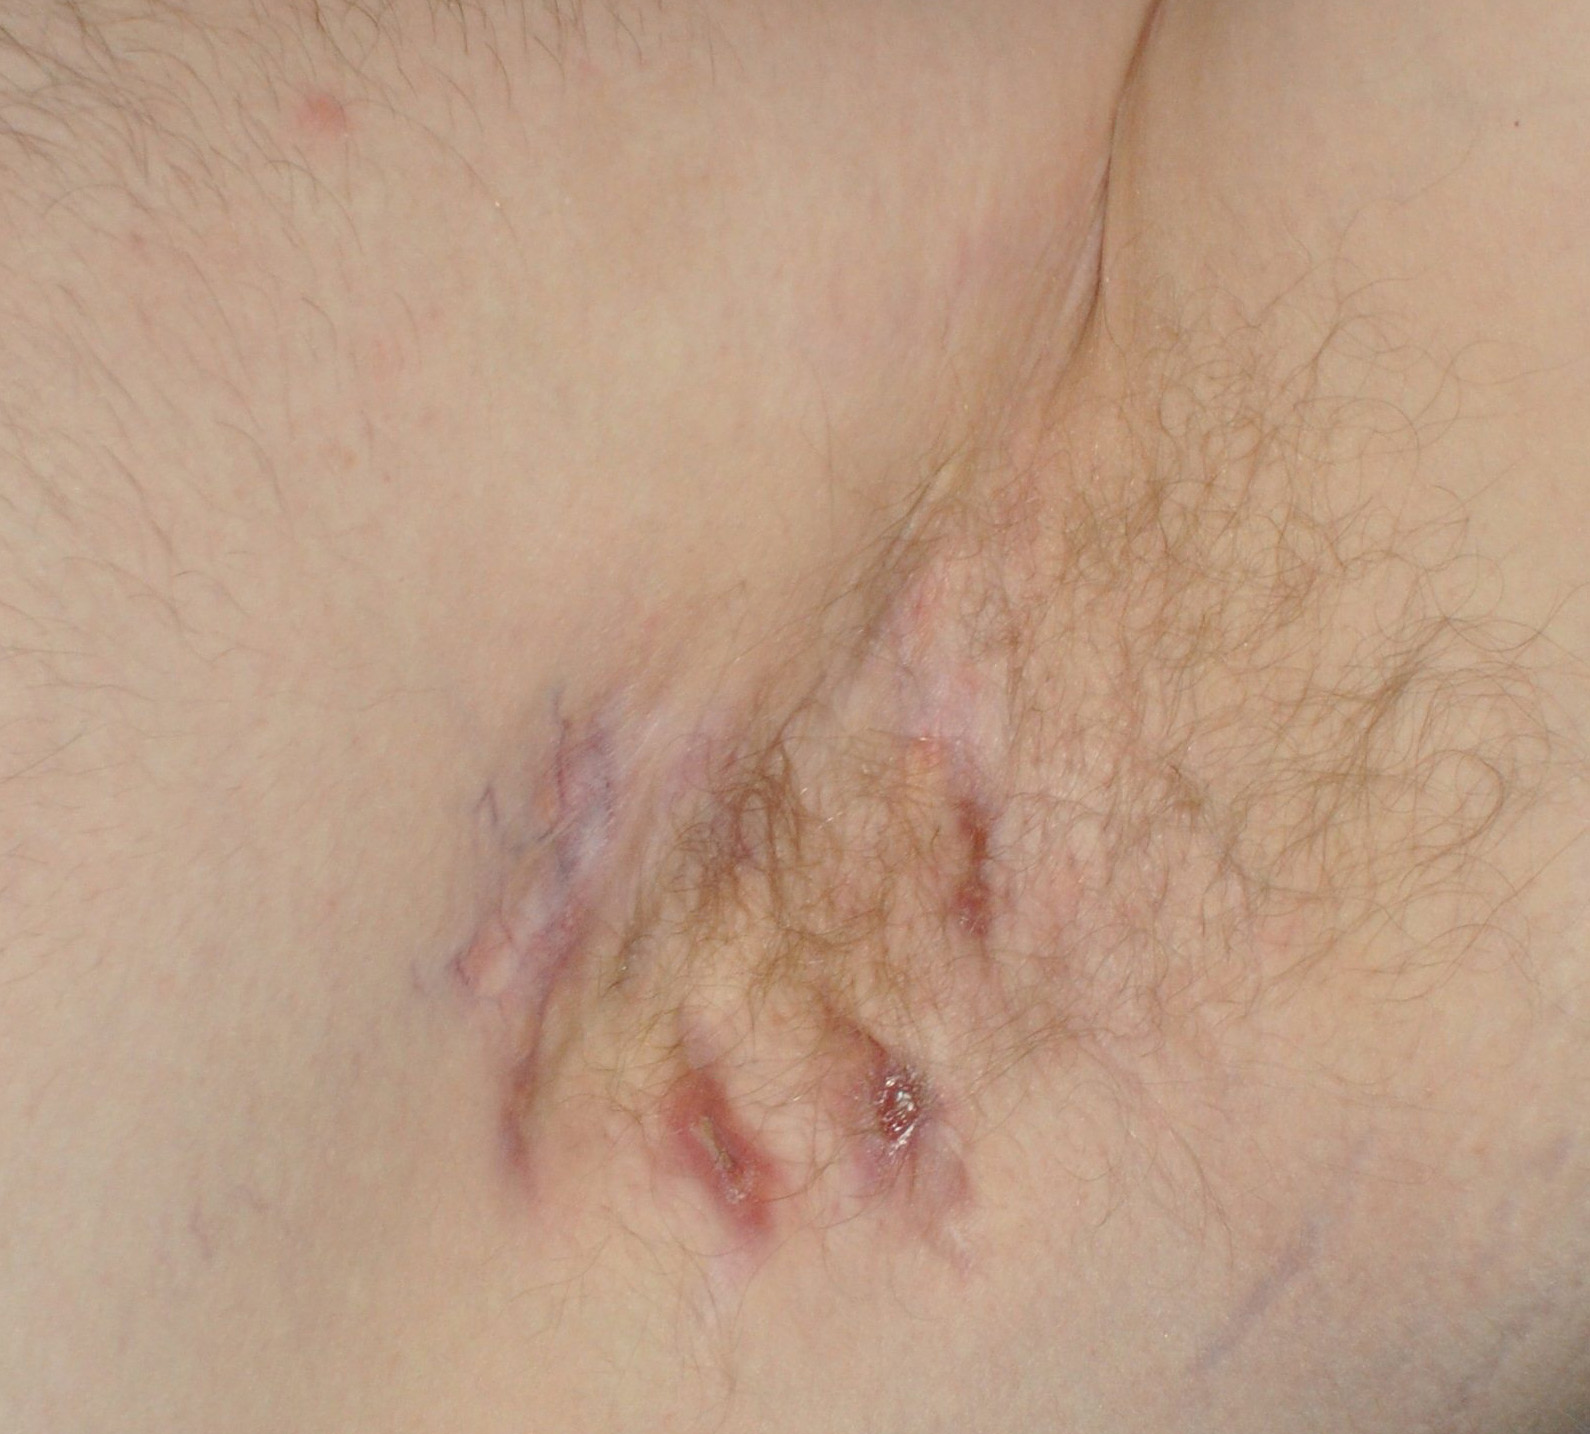 Moderate Case of Hidradenitis Suppurativa Located on the Armpit of a Male Patient